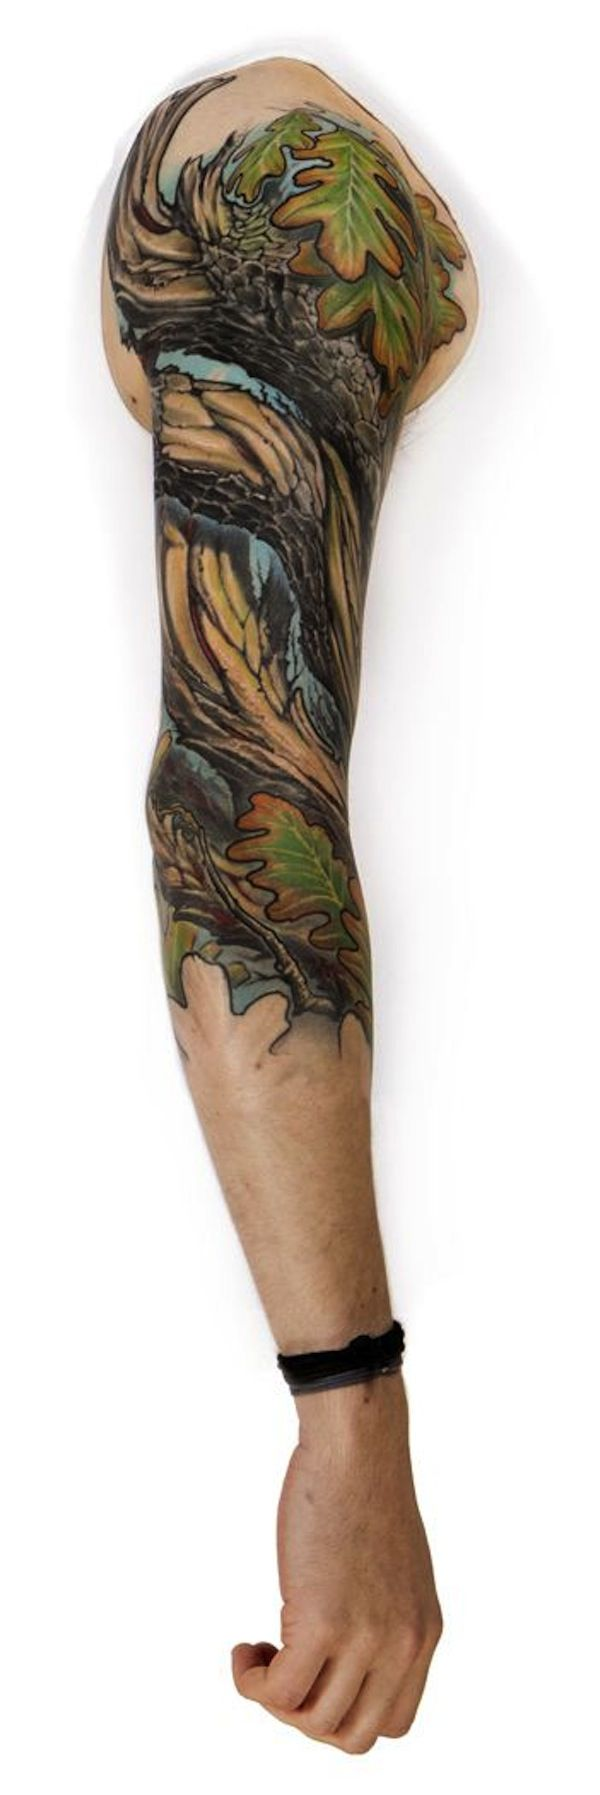 This is an ember oak tattoo which really looks cool. #TattooModels #tattoo